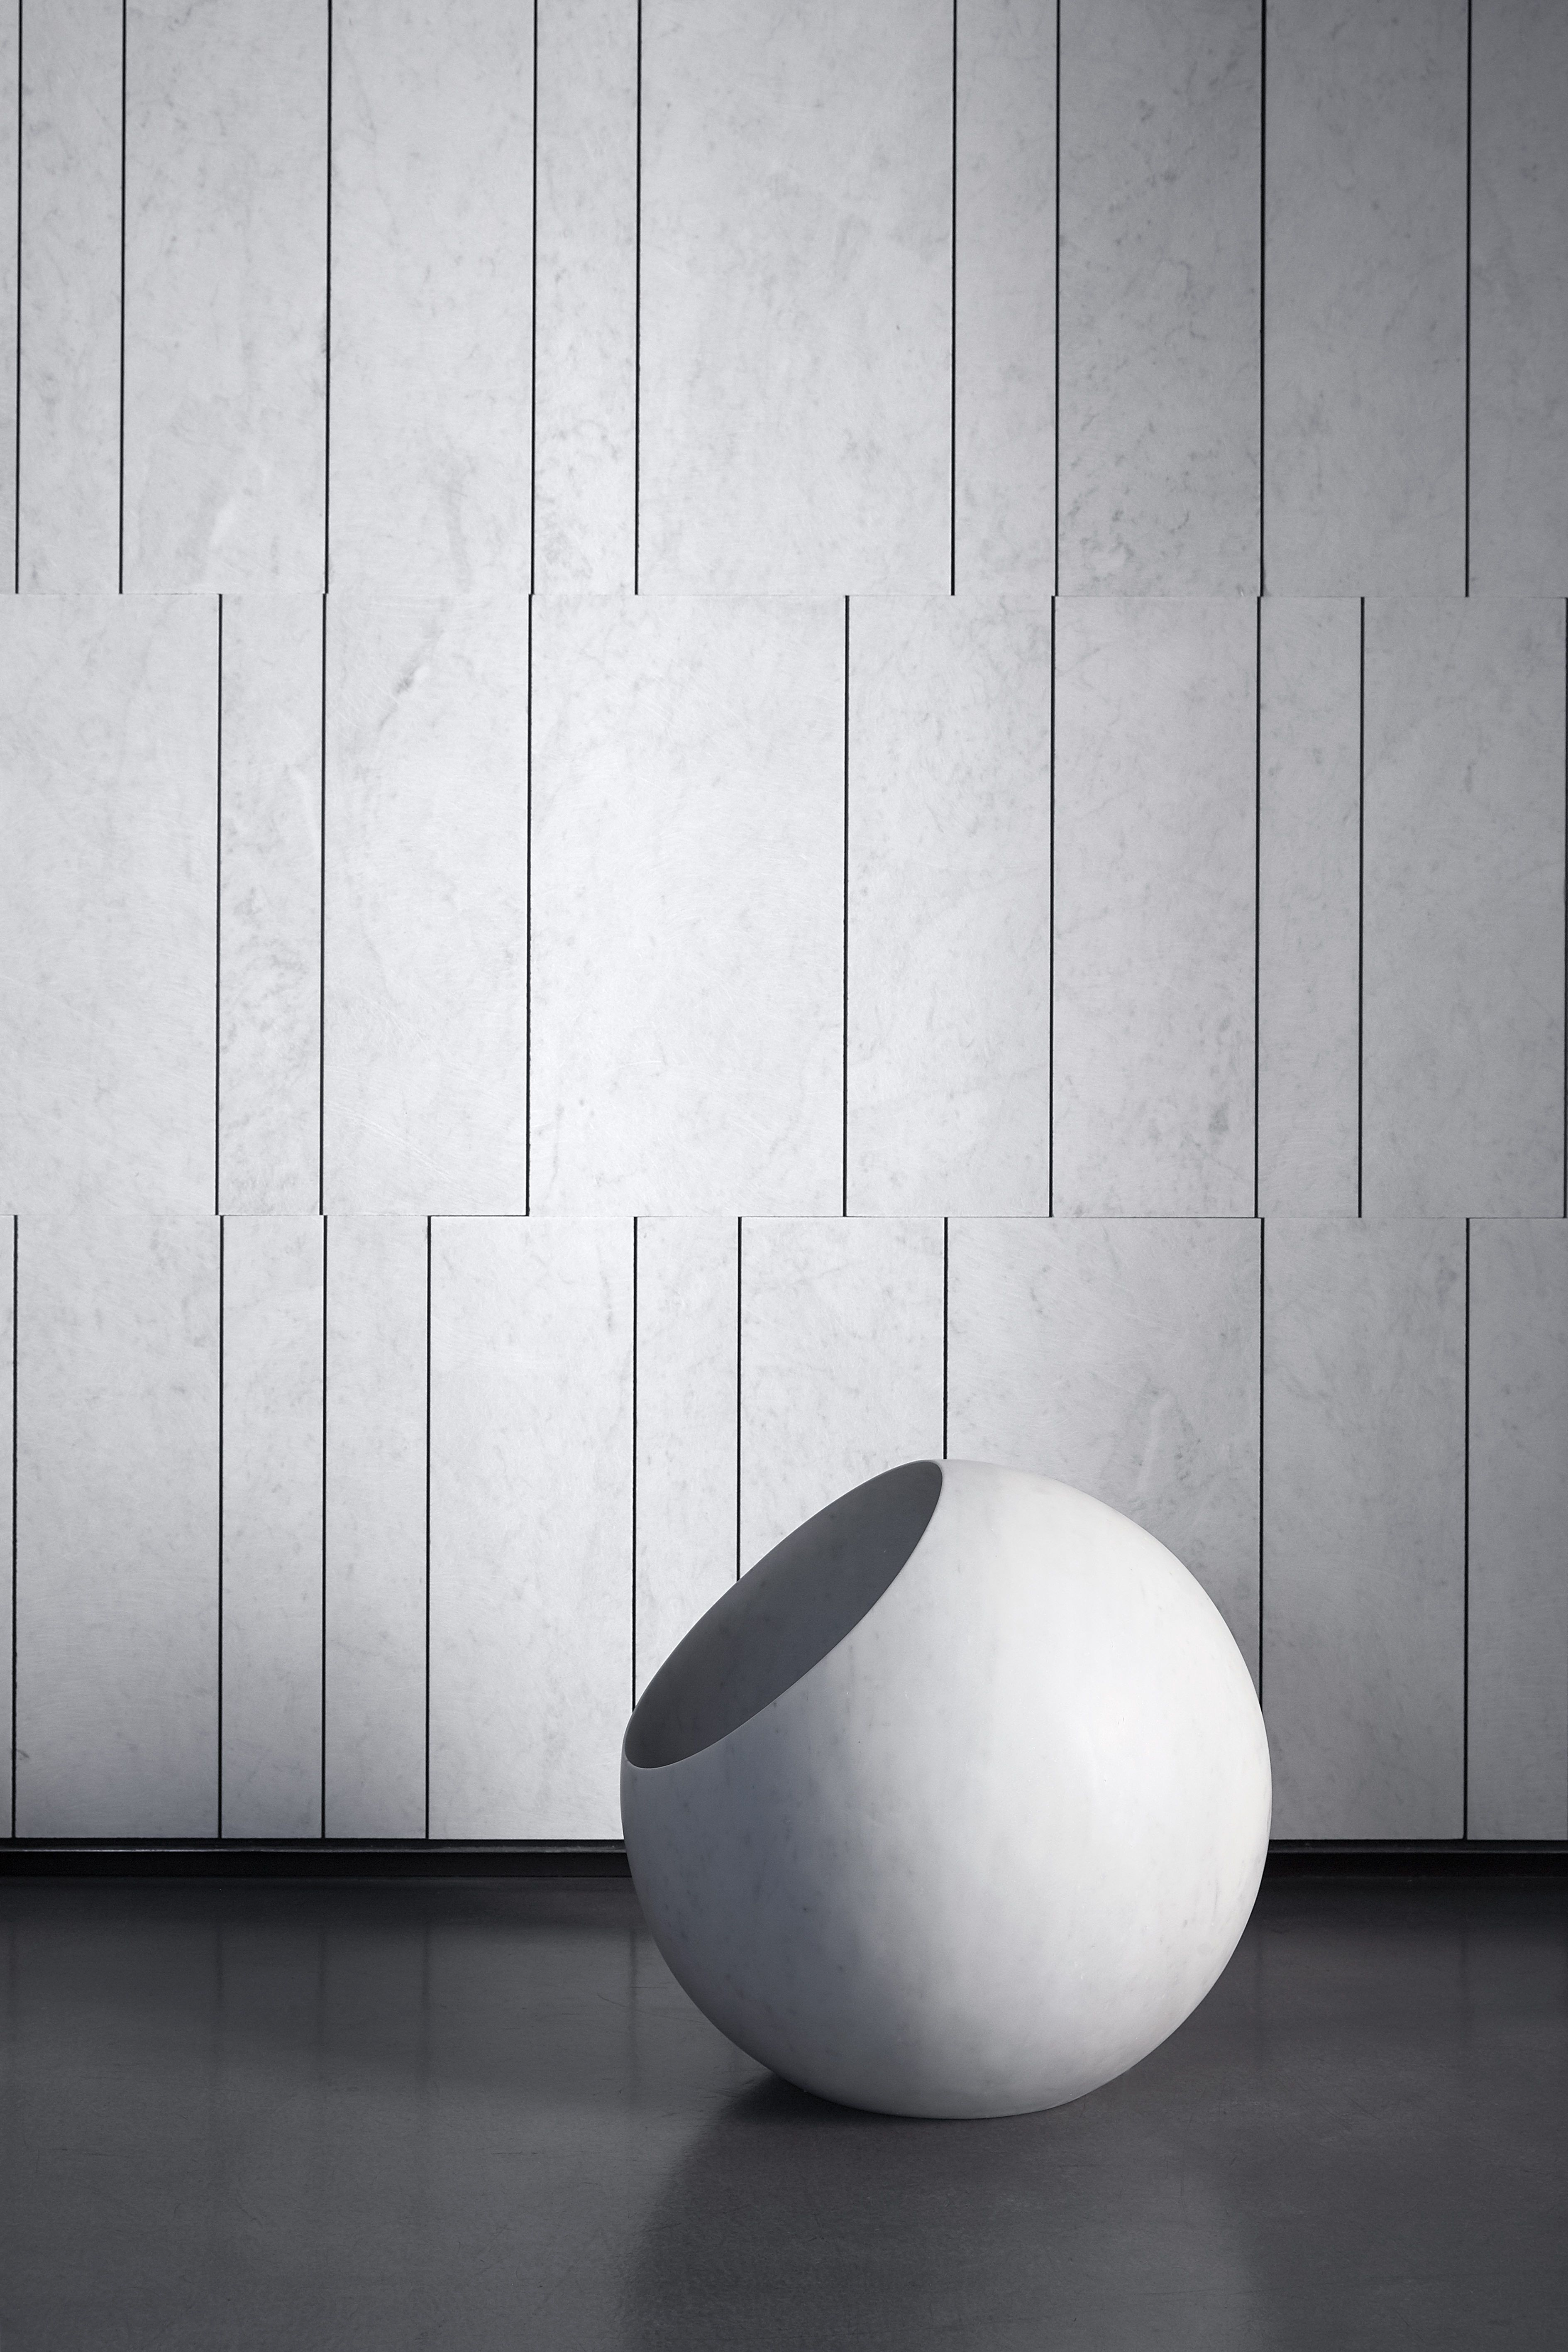 Urano collection. Urano, designed by Elisa Ossino, is a gorgeous sphere carved out of a cube of Bianco Carrara, shedding a soft and romantic light. Available in diameters of 18 and 30 cm for the table or 50 cm as a floor lamp.